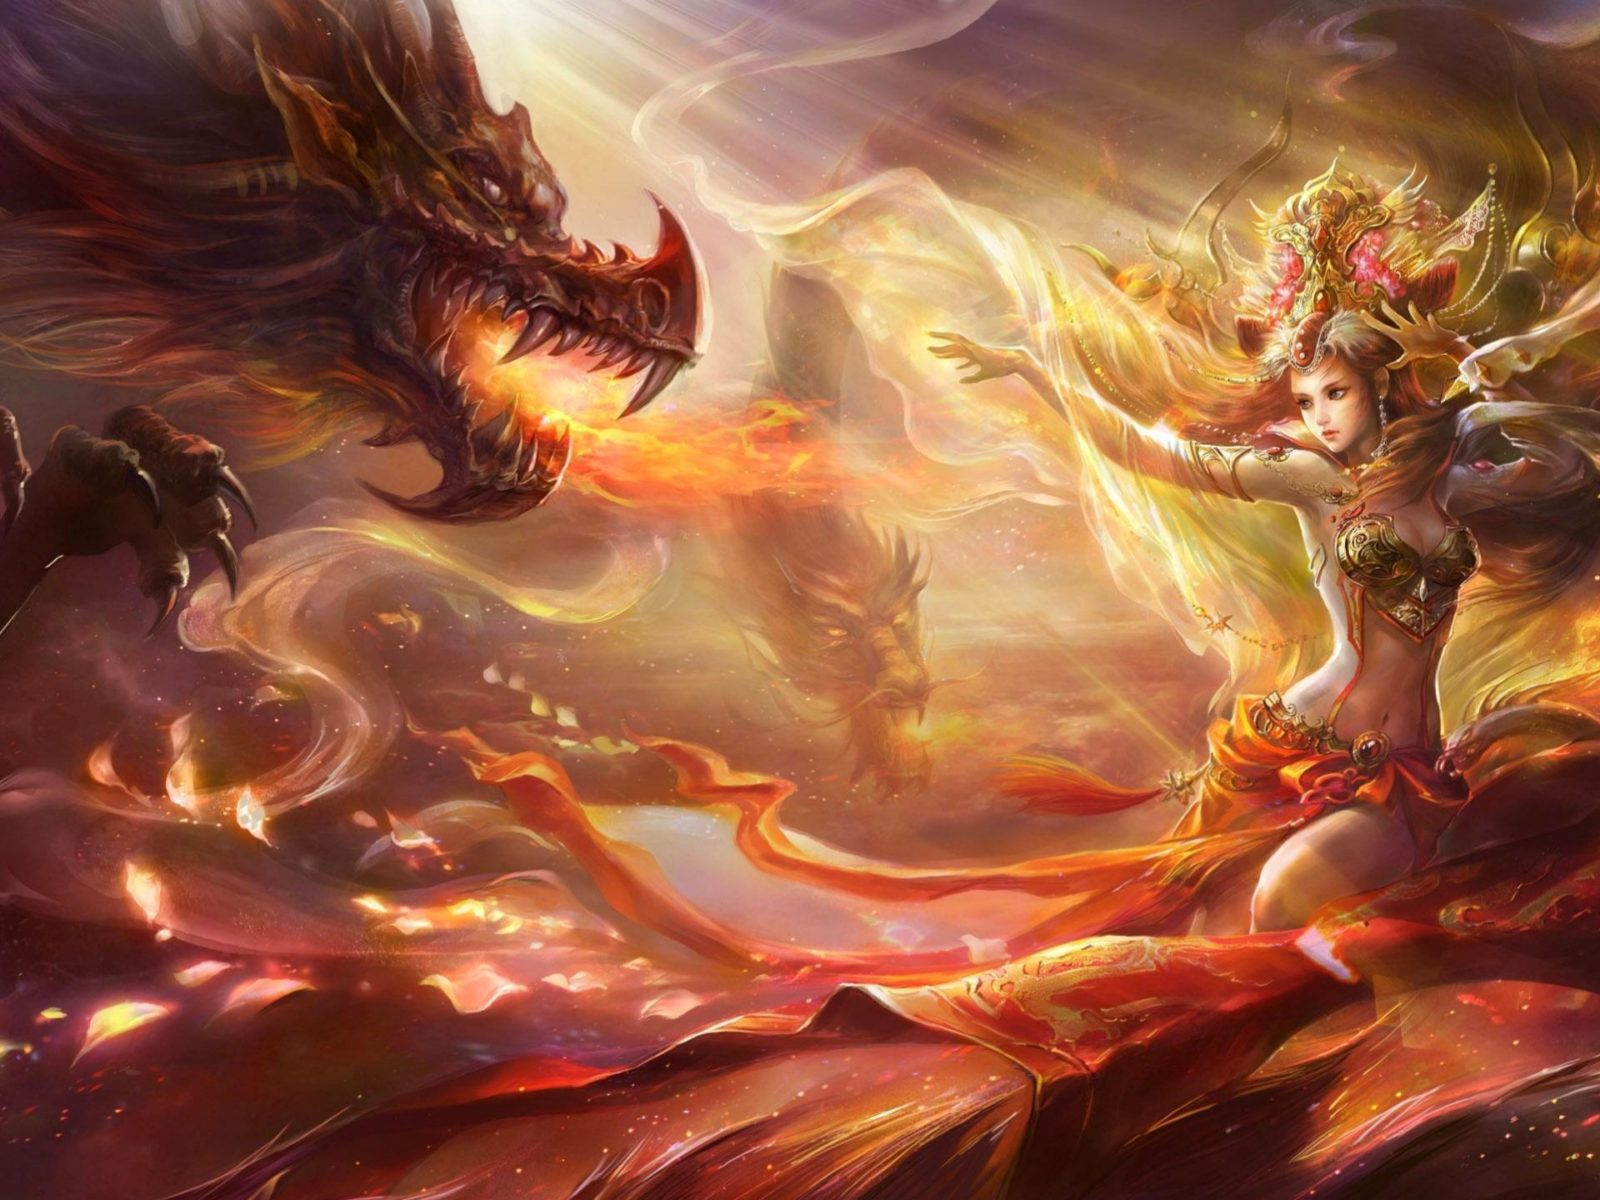 Beautiful Girl Wallpaper Iphone Dragon Fantasy Art Artwork Wallpaper Background 331511